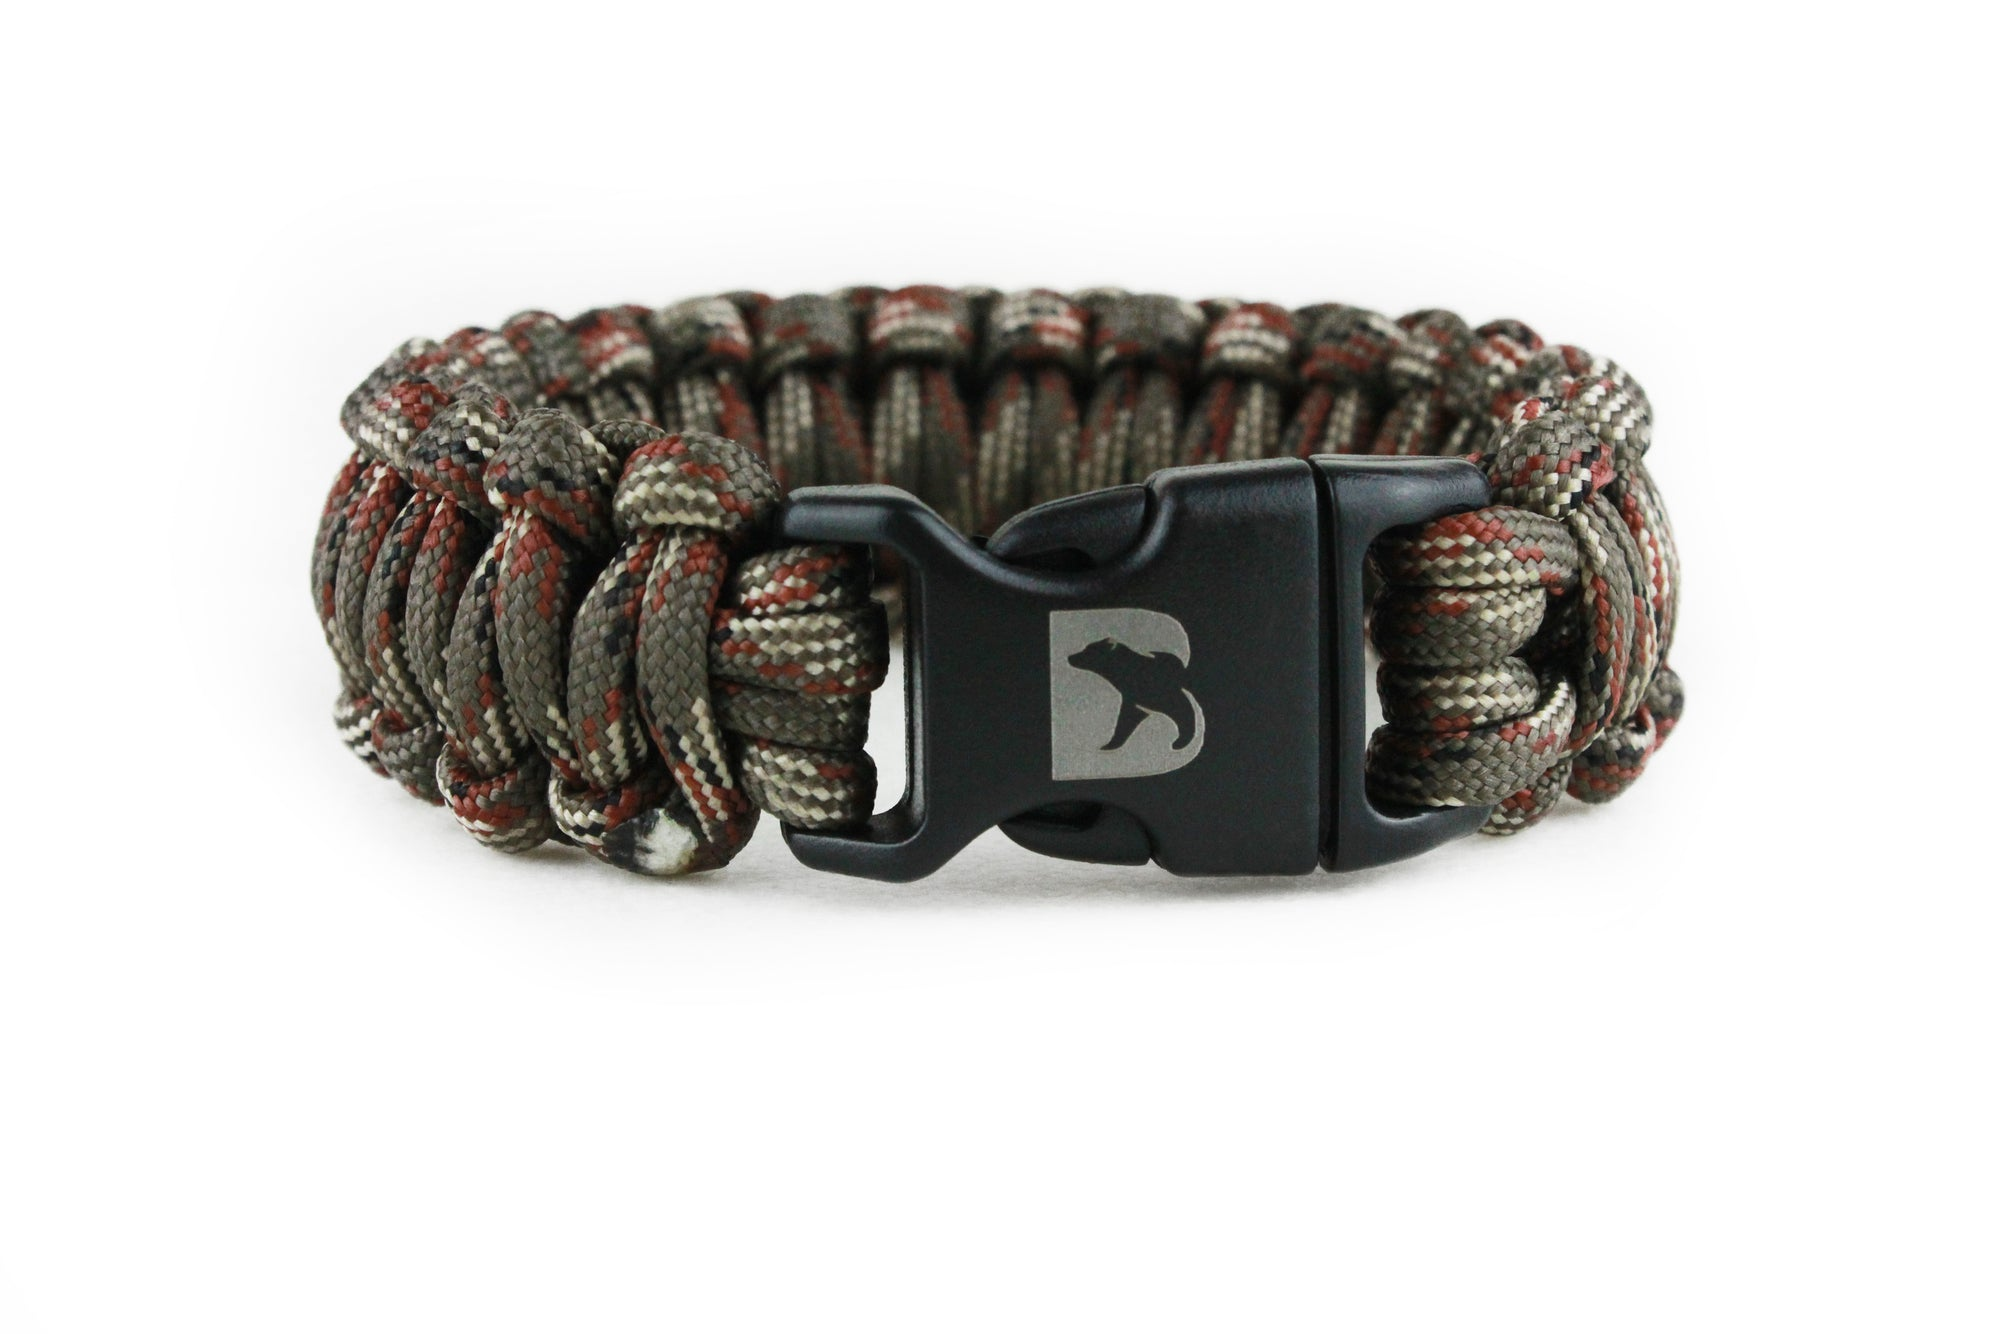 Green Camo Paracord Bracelet - Bearbottom Clothing